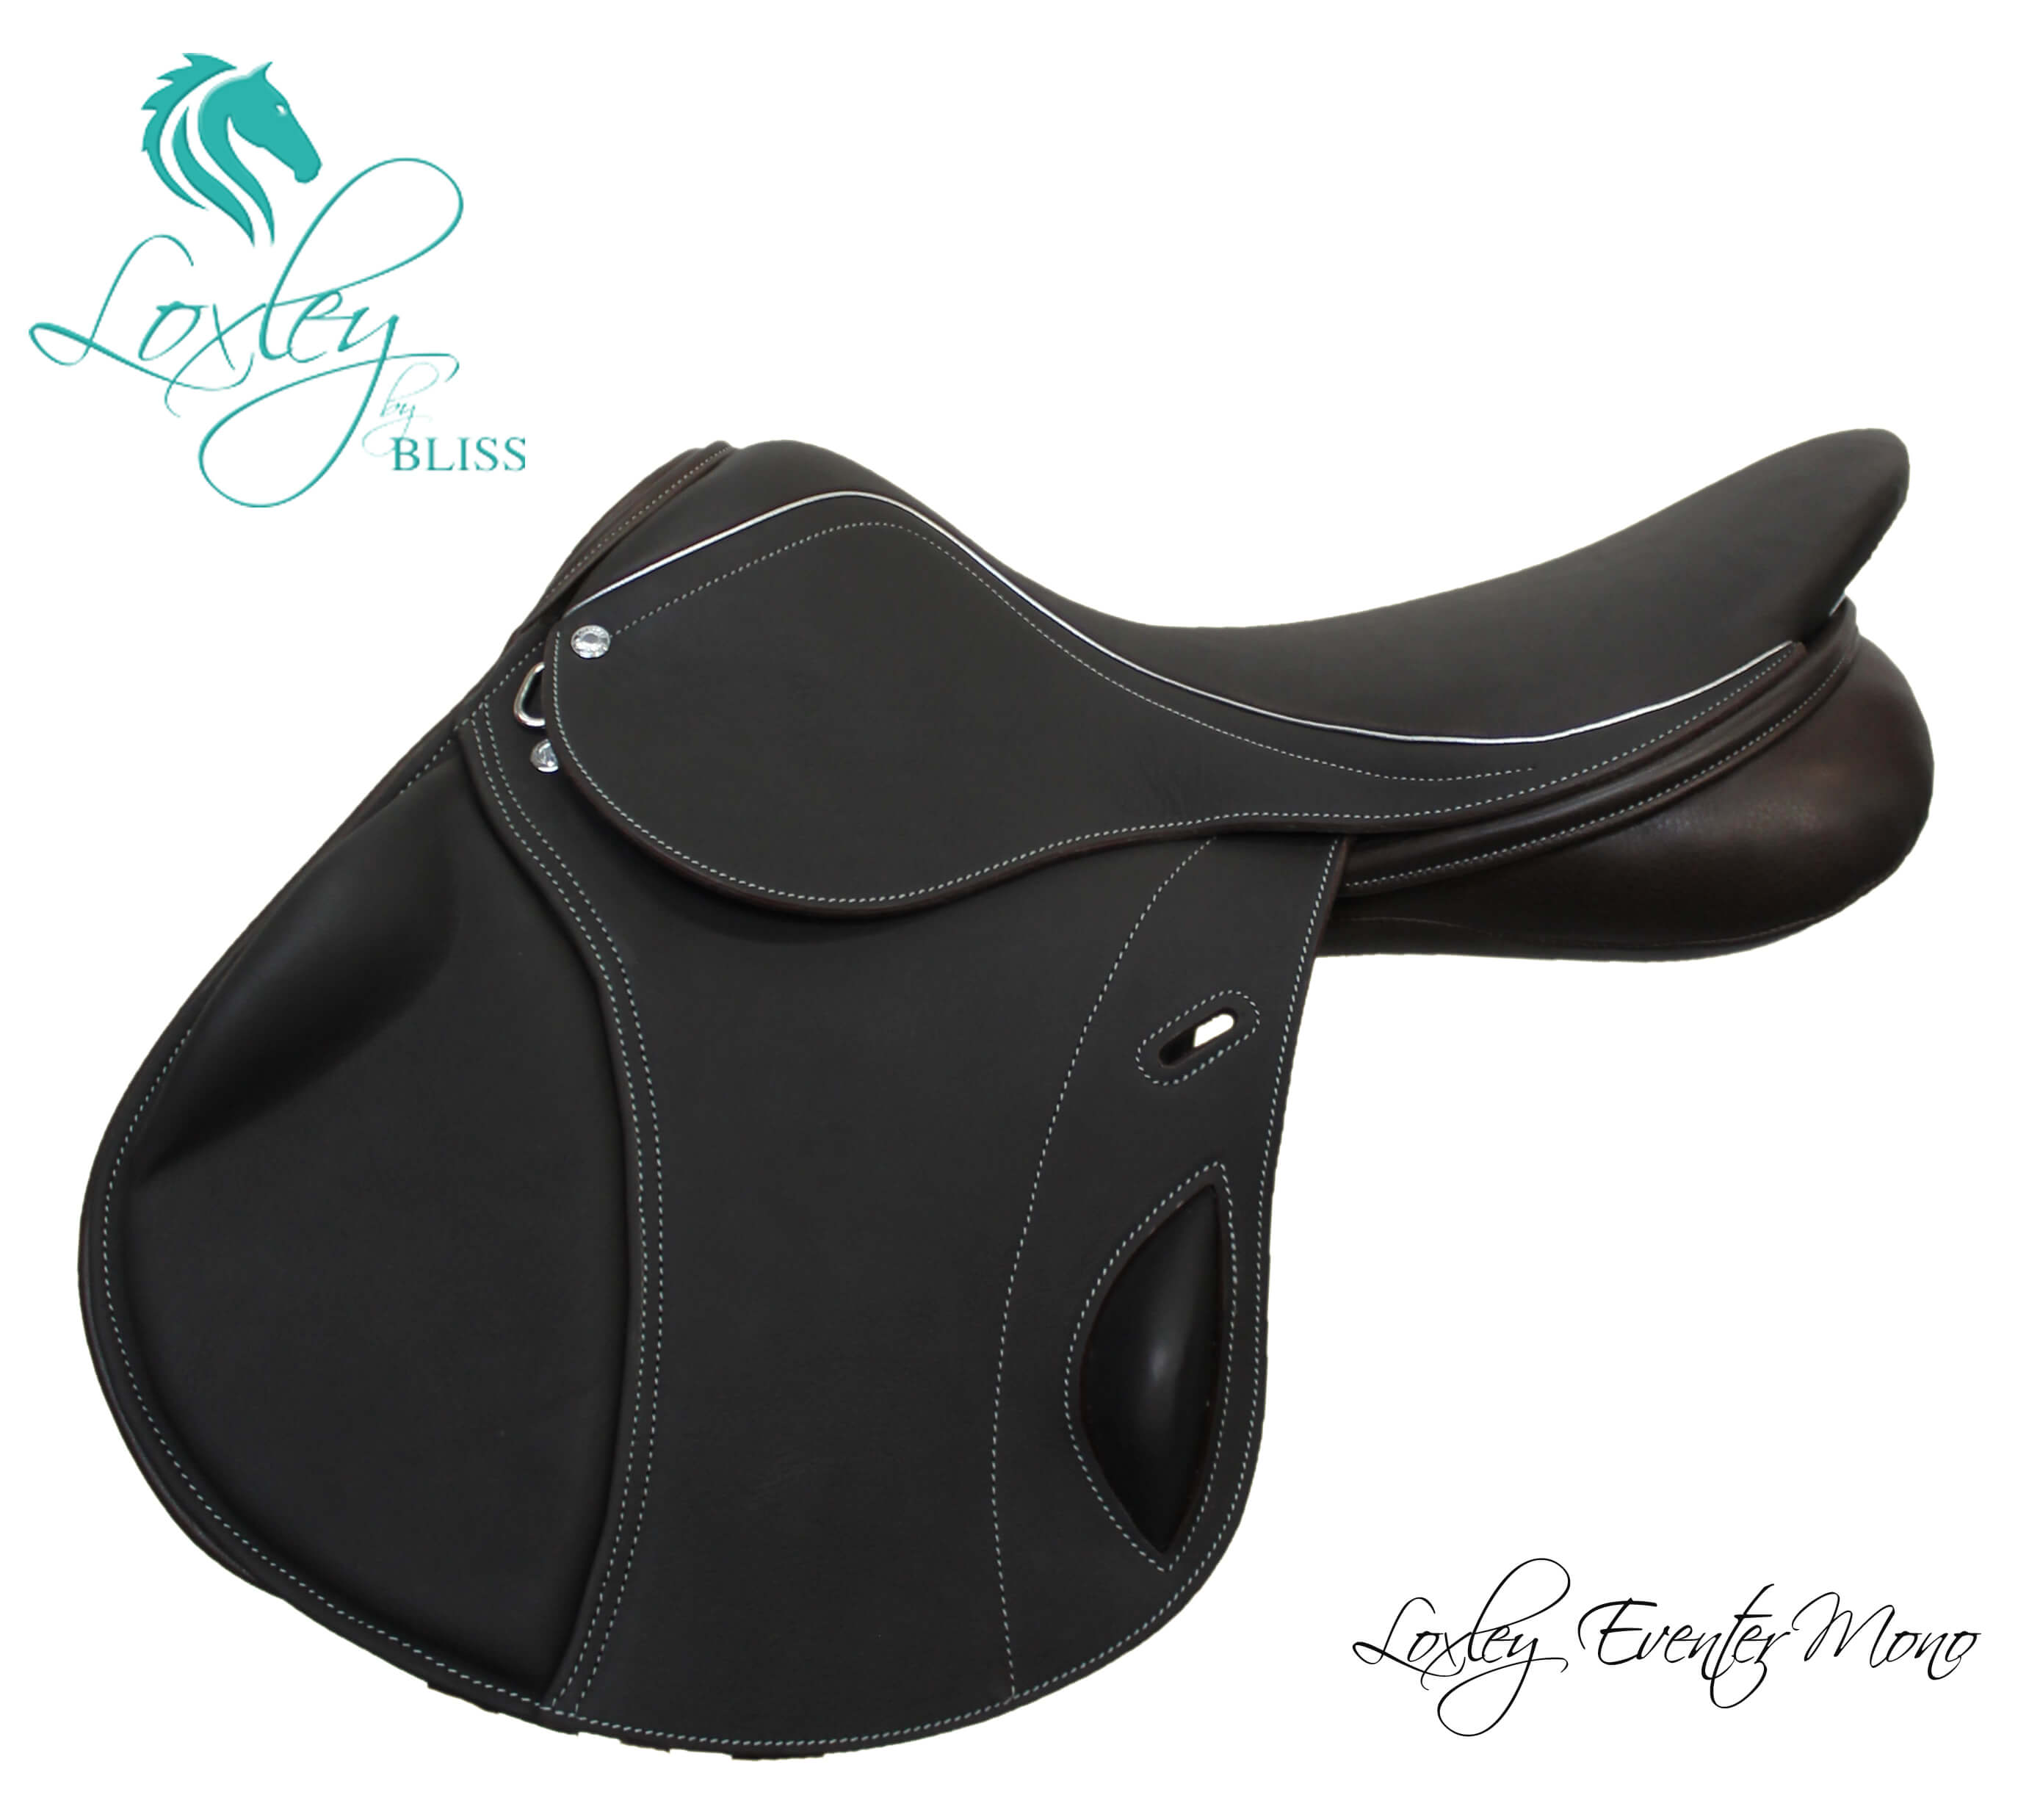 2 Loxley eventer mono Saddle Image Template